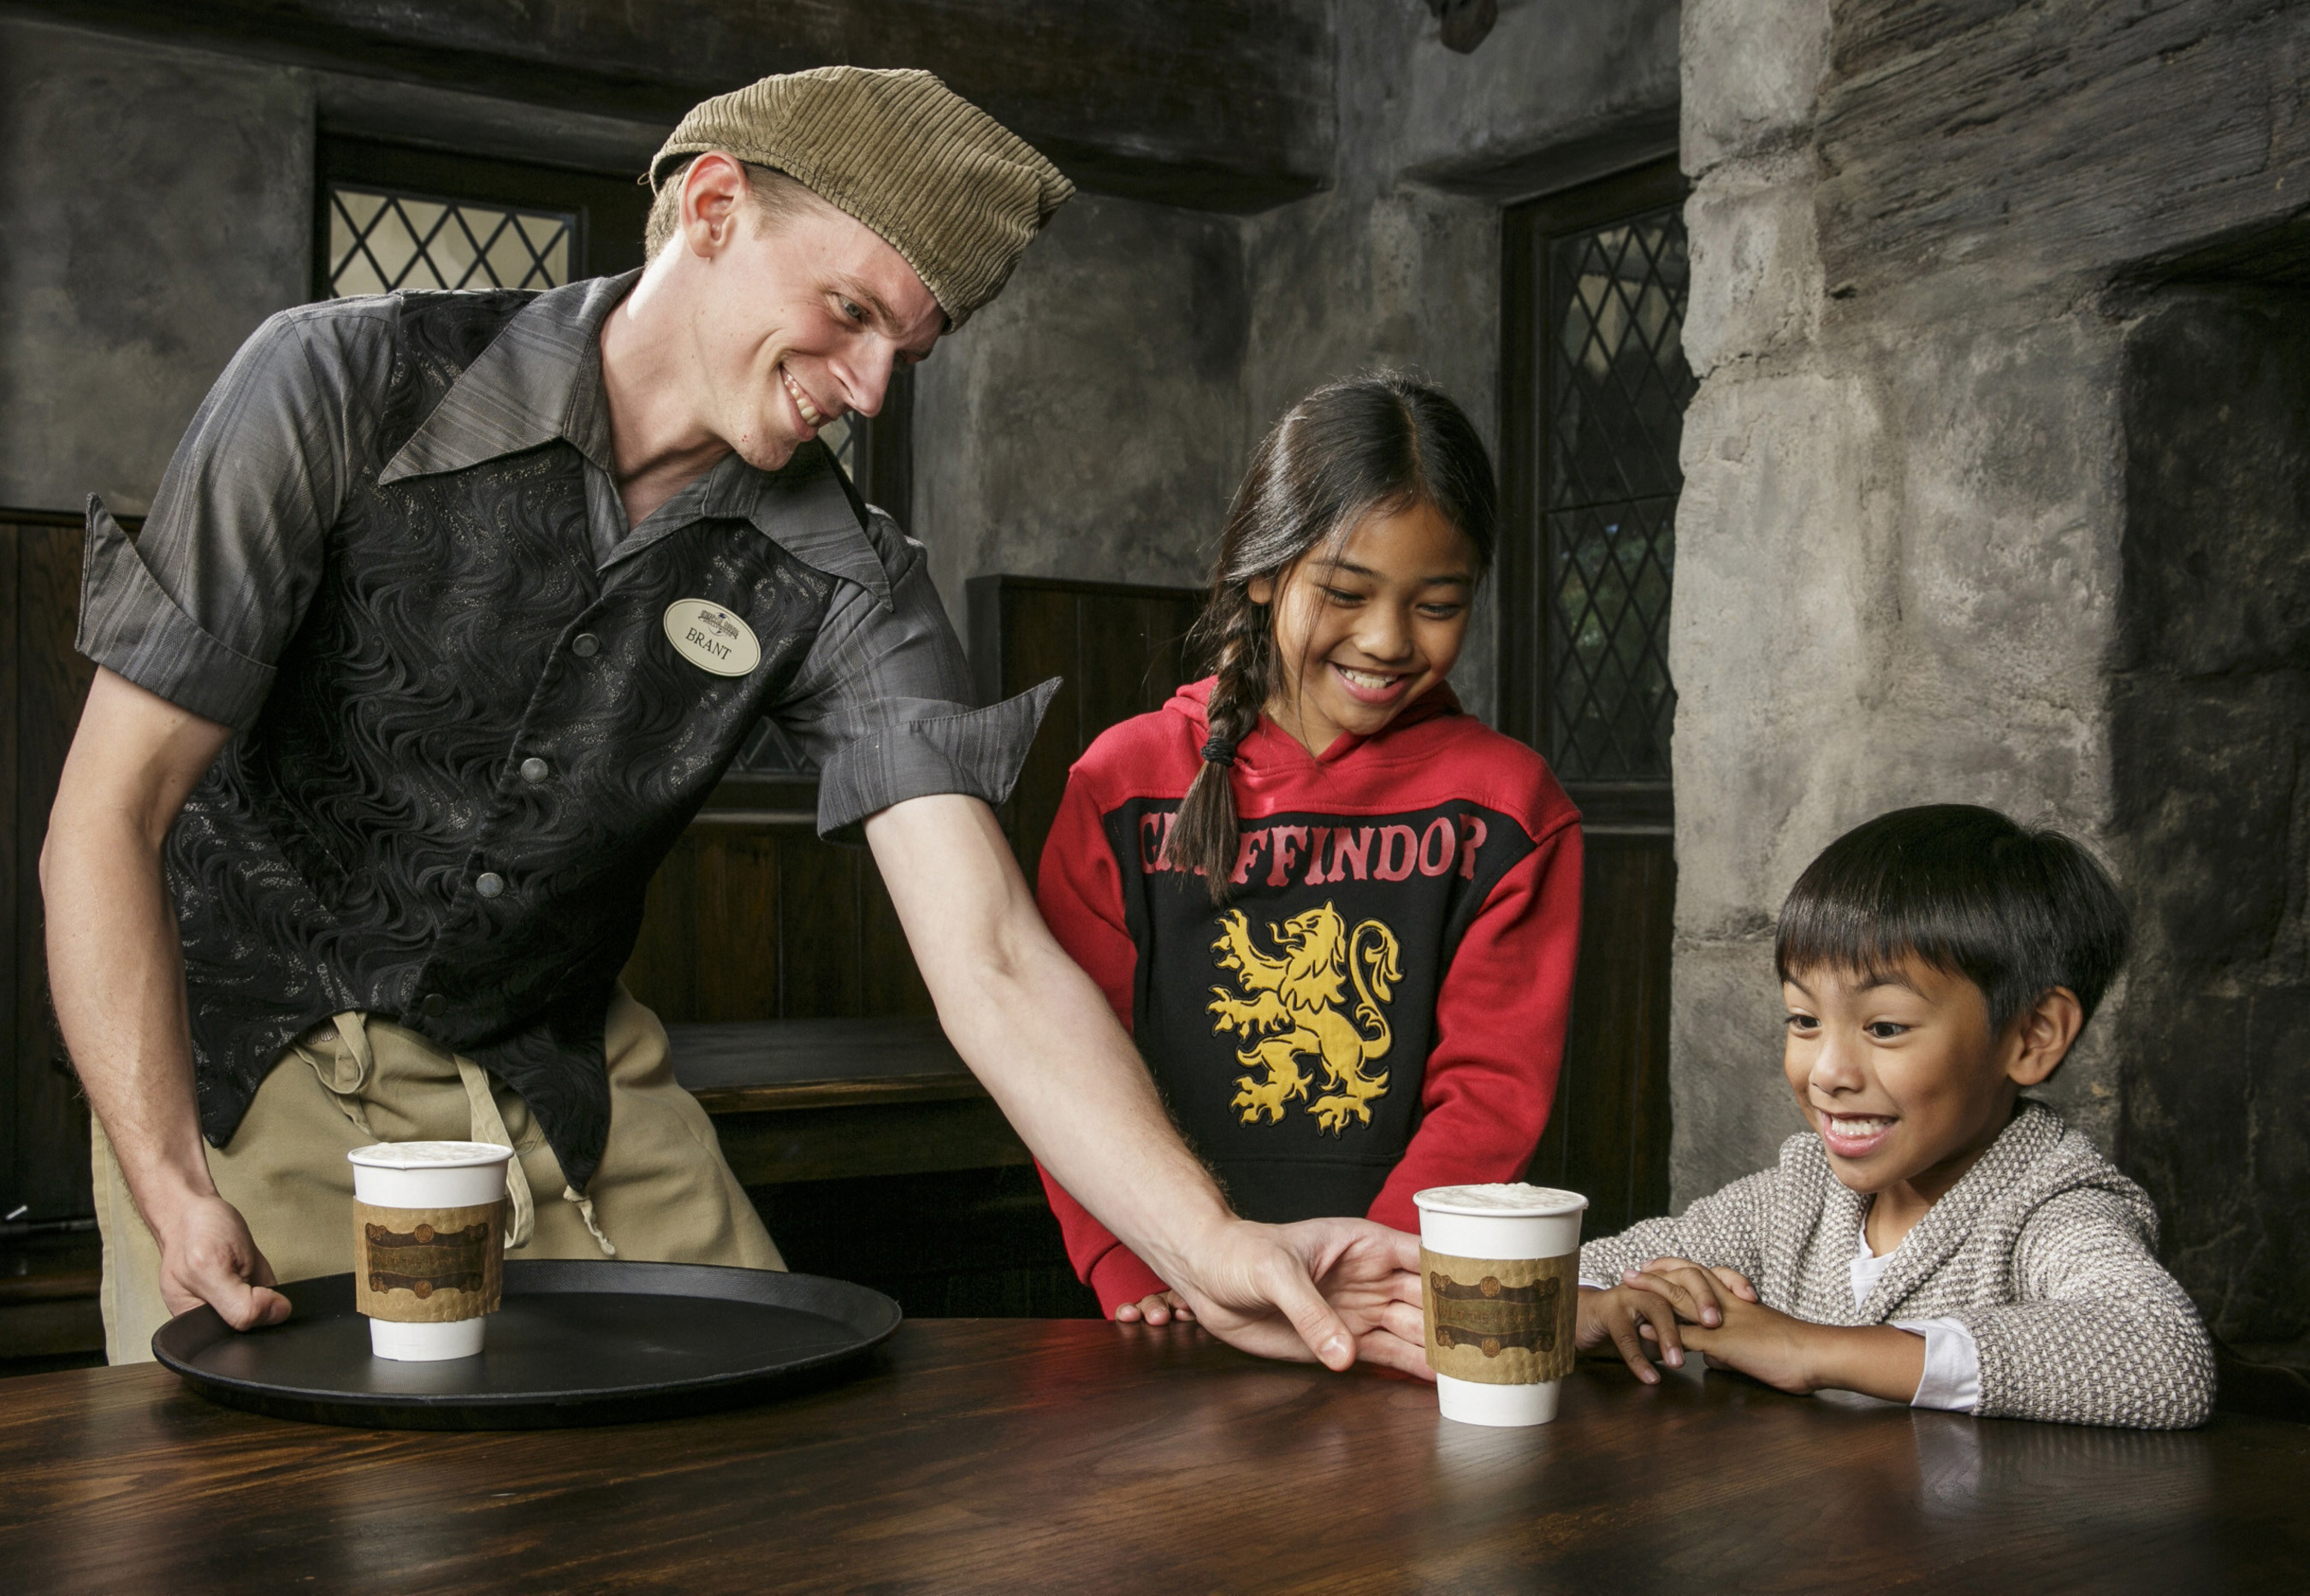 """""""The Wizarding World of Harry Potter"""" at Universal Studios Hollywood Adds Hot Butterbeer to its Menu of Scrumptious Fare Served at Three Broomsticks and Hog's Head Pub"""